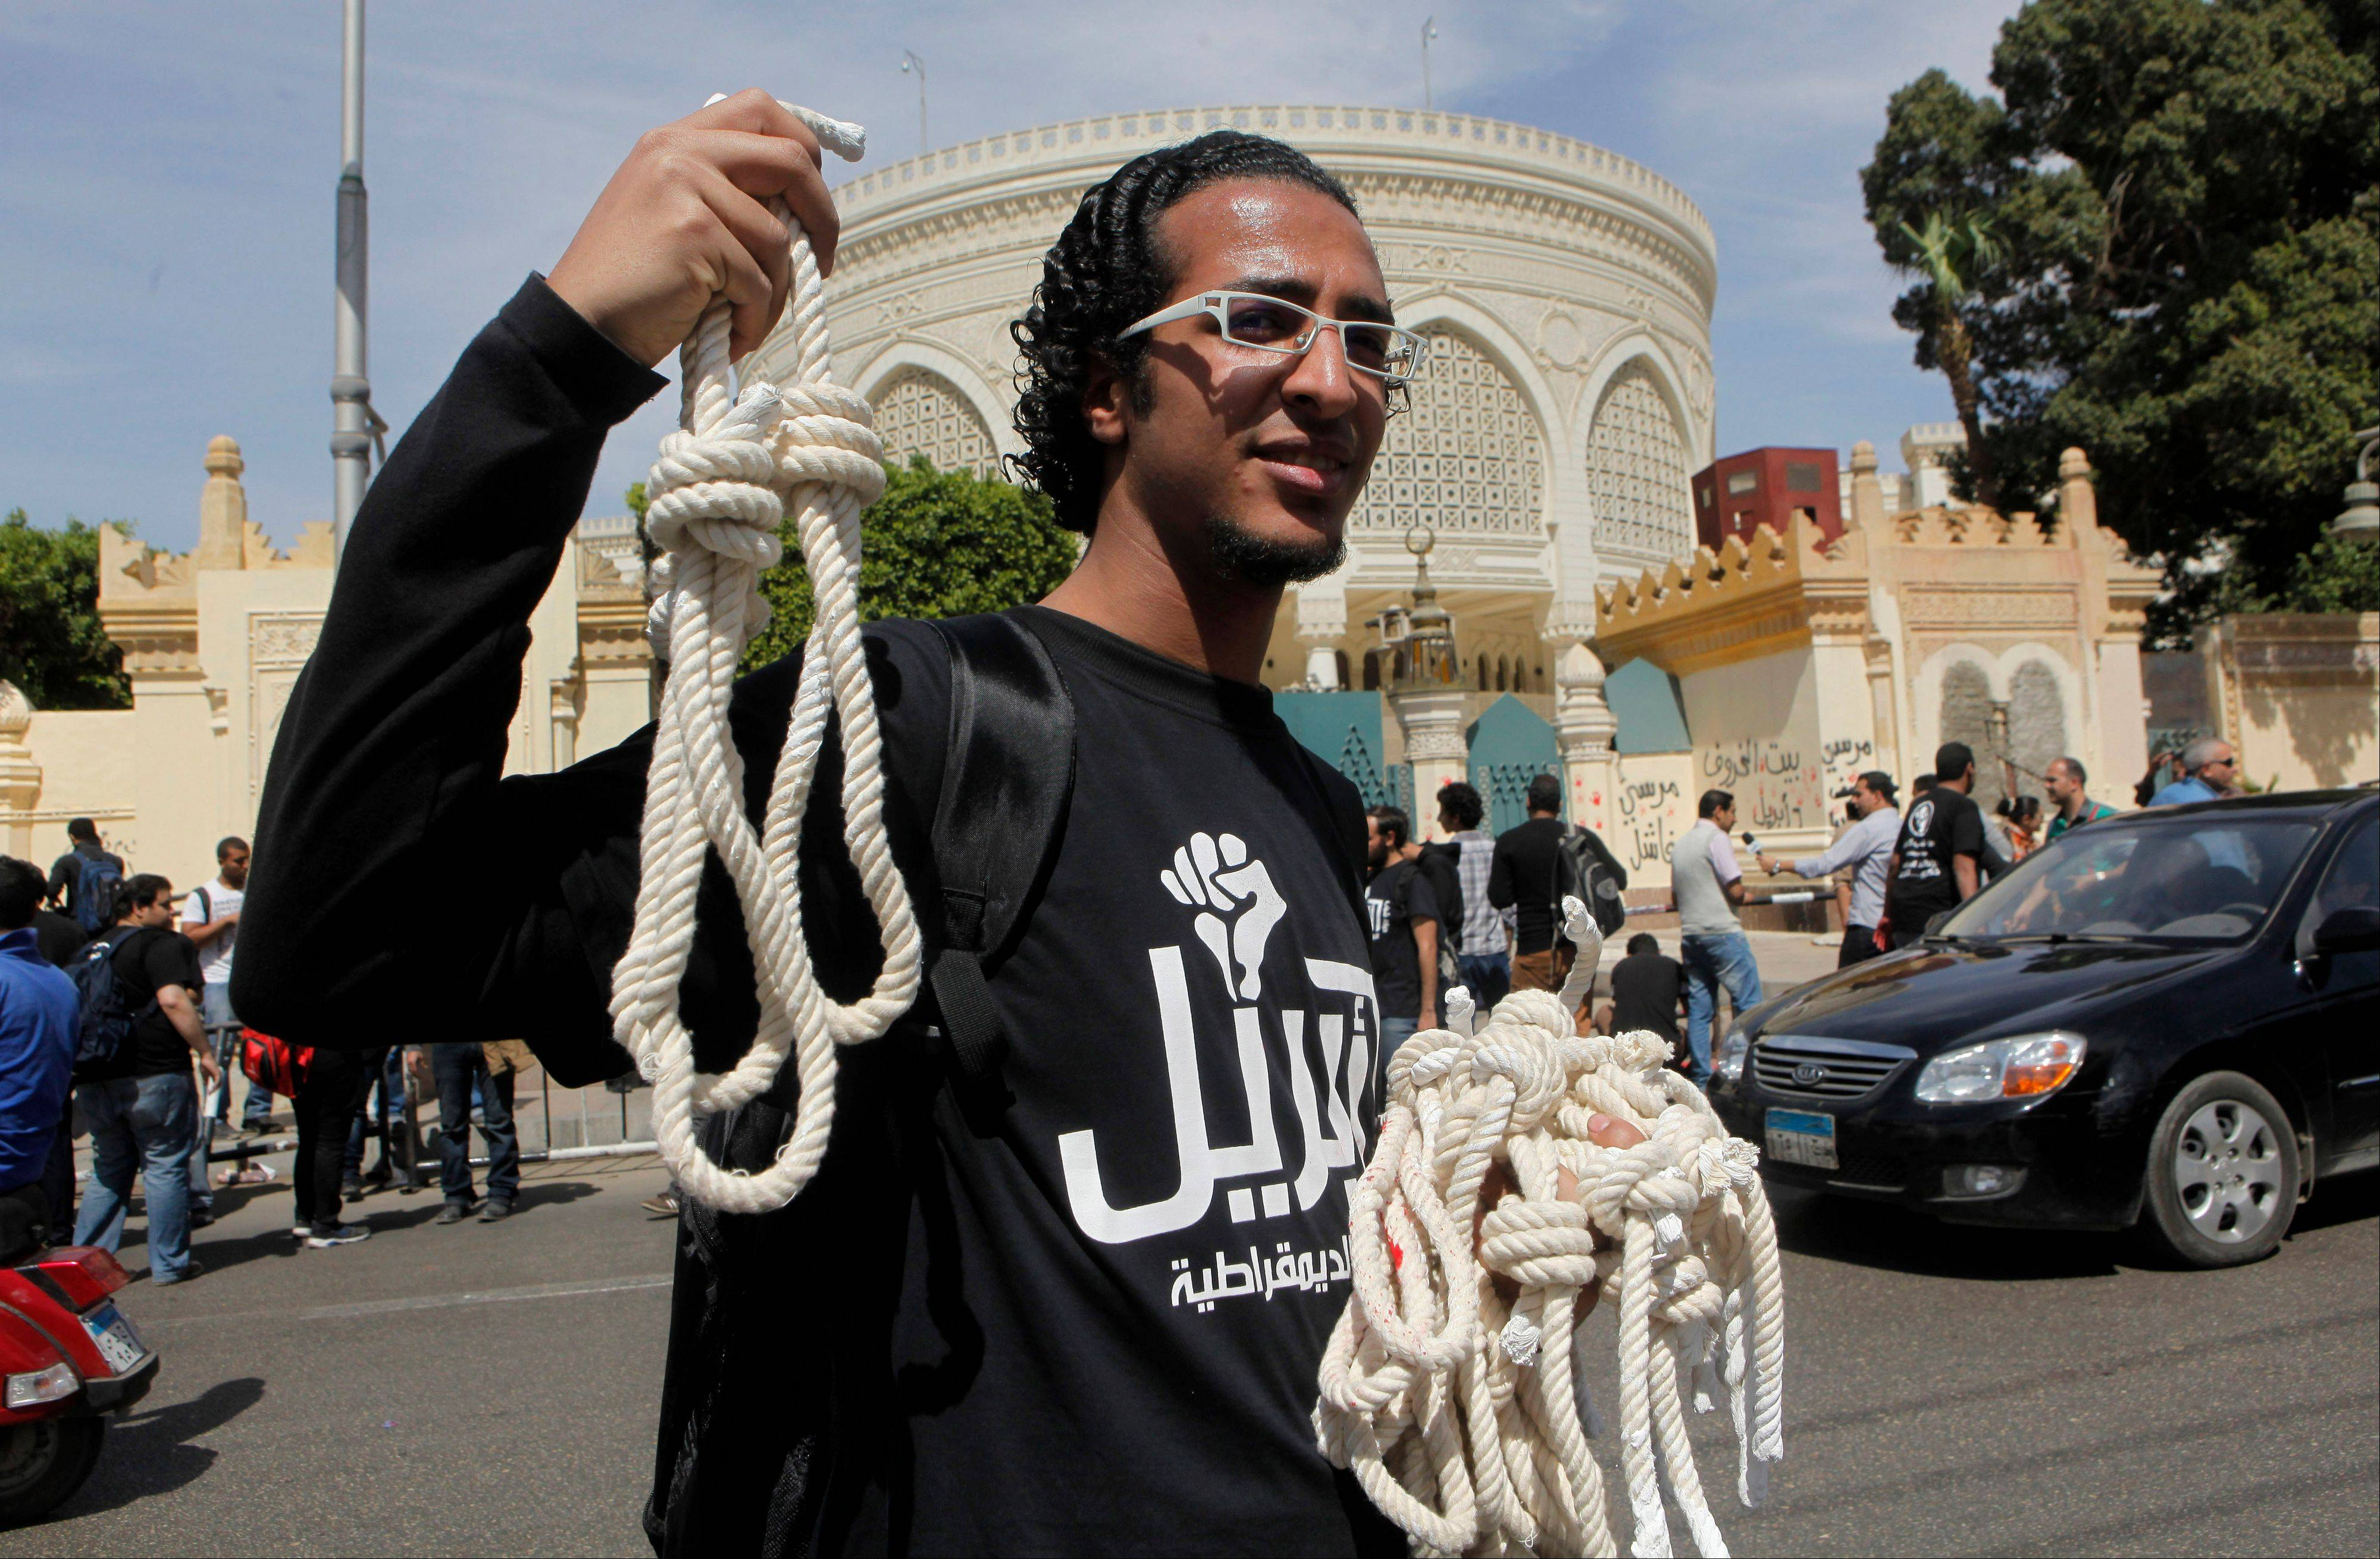 Associated PressA member of Egypt's April 6 Youth Movement distributes nooses in front of the presidential palace in Cairo Saturday, April 6. The group is rallying to mark its fifth anniversary and to protest against President Mohammed Morsi.